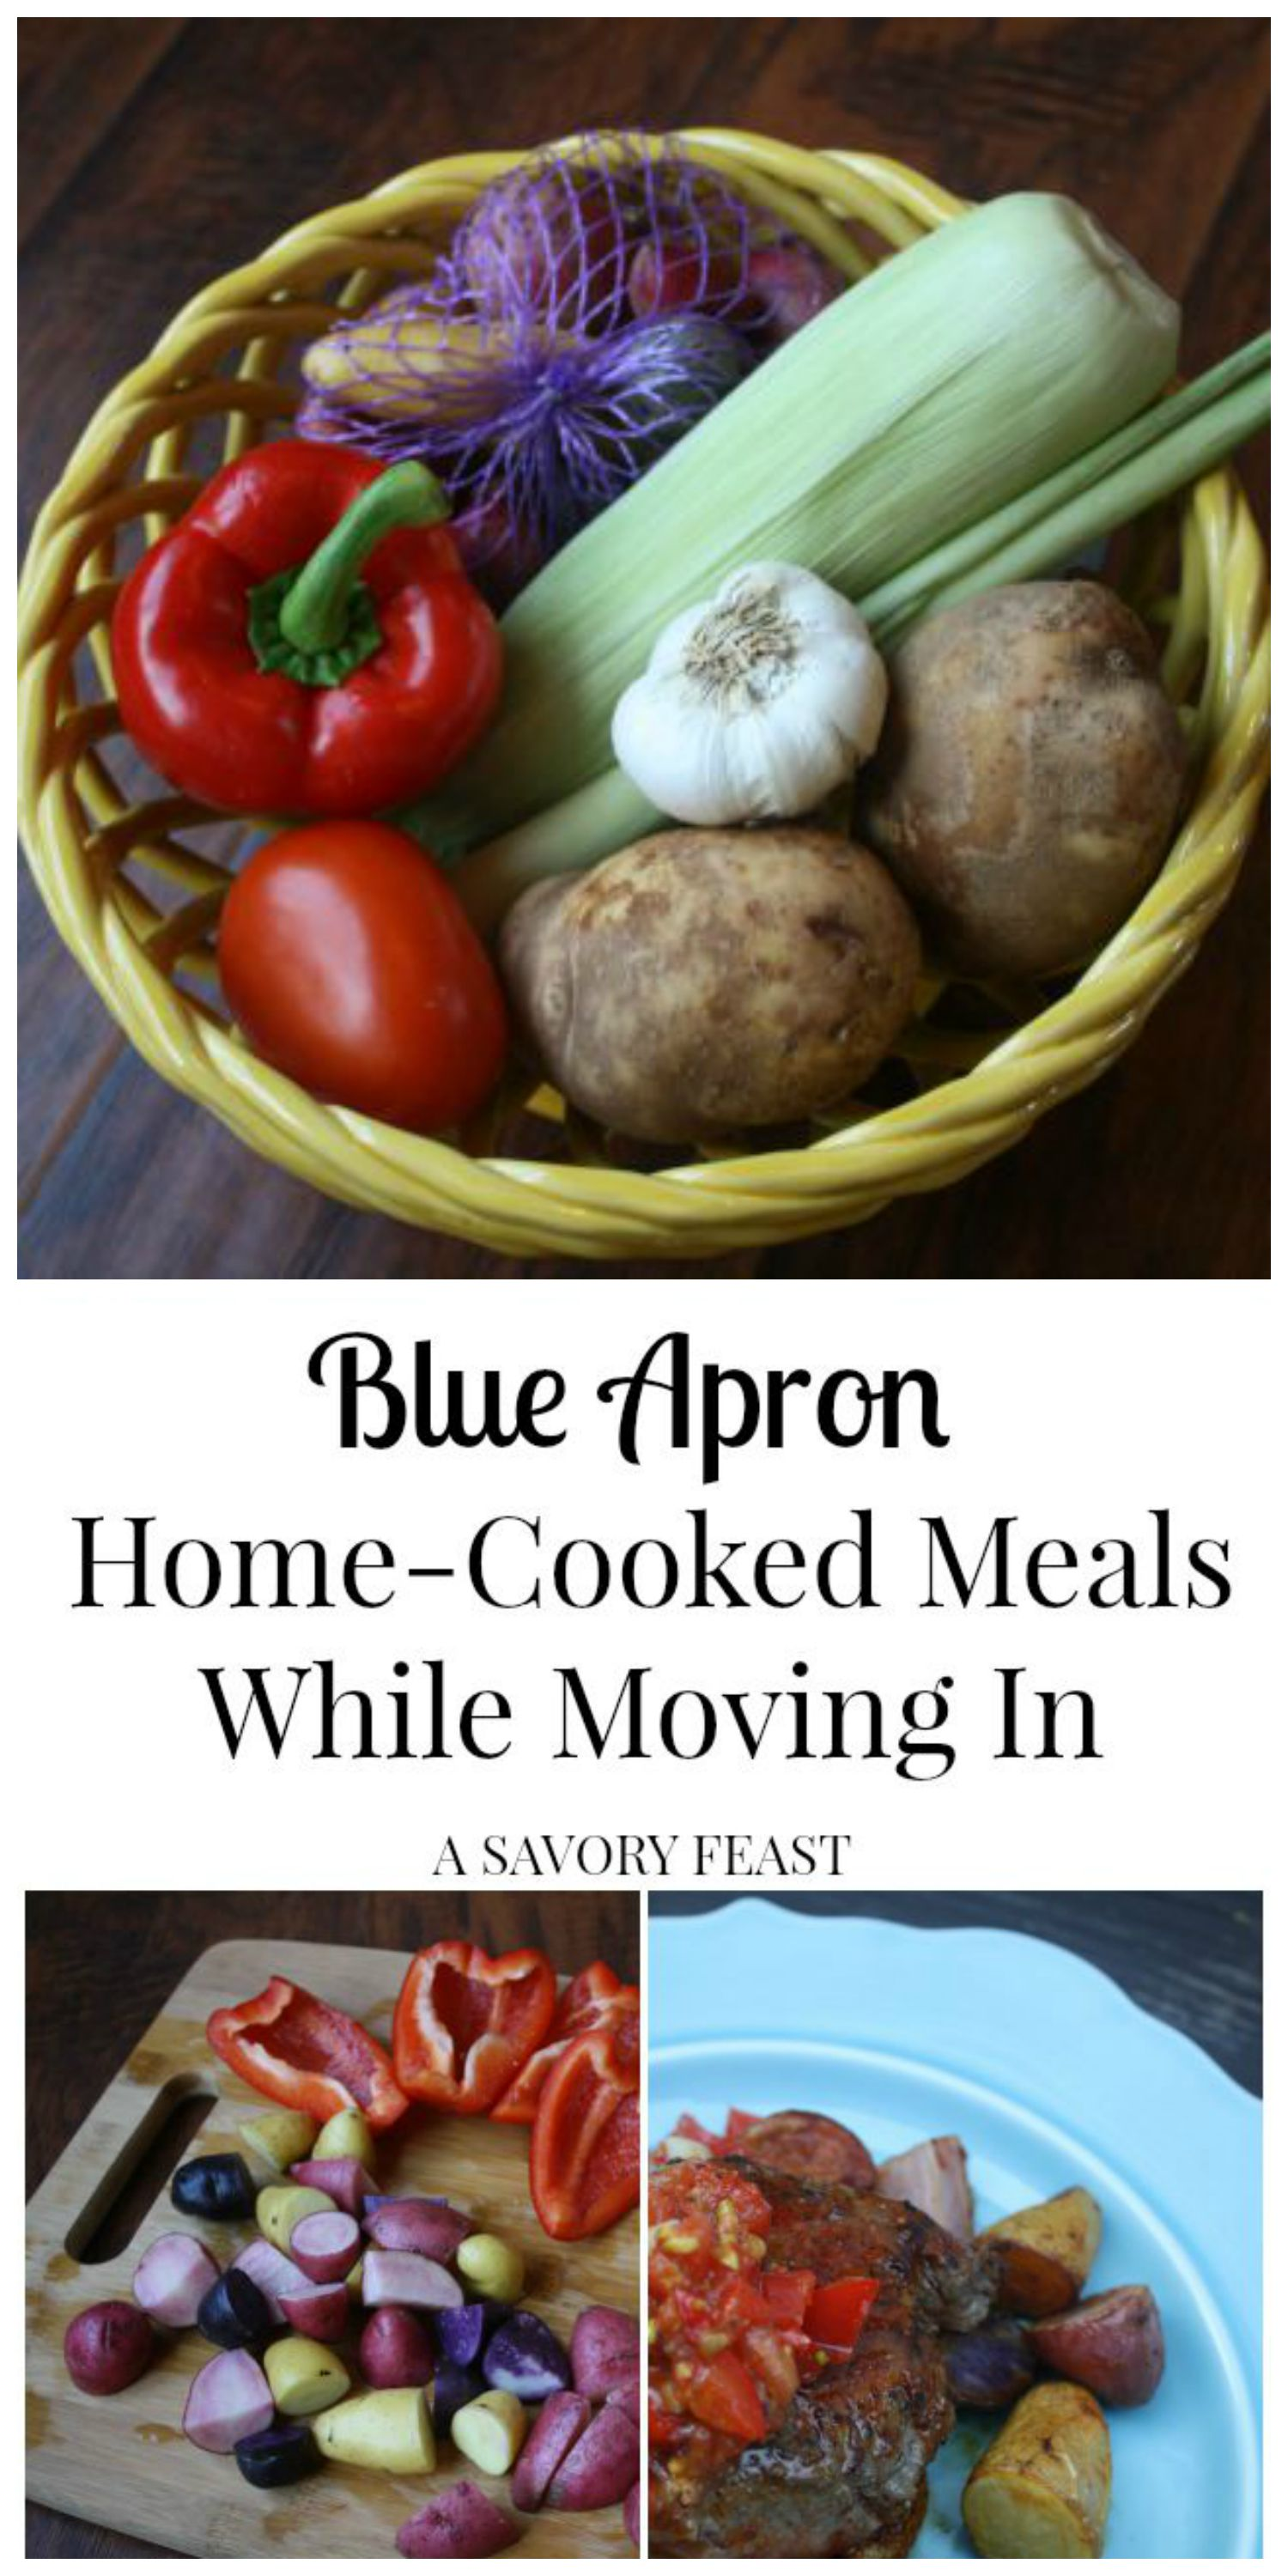 Blue apron diet - Blue Apron Makes Cooking So Much Easier I Was Able To Make Home Cooked